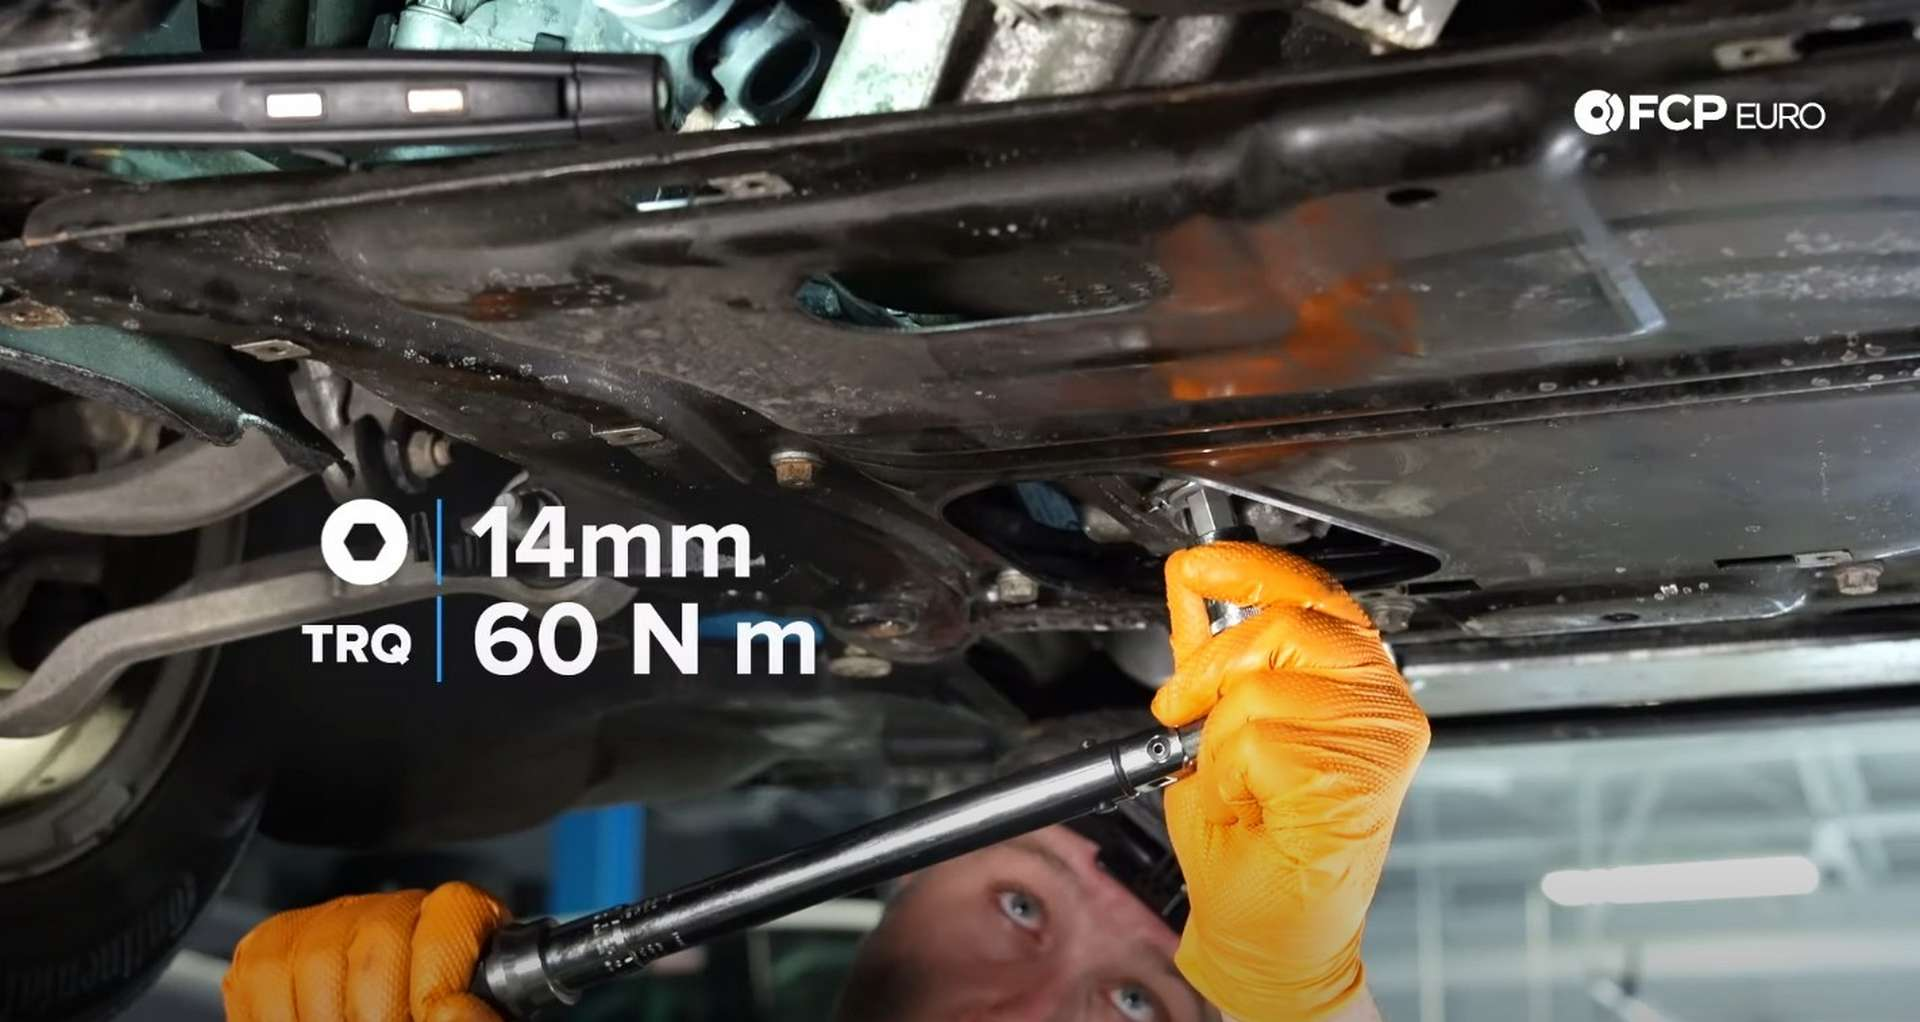 DIY BMW F30 Front Differential Fluid Replacement replacing the drain plug